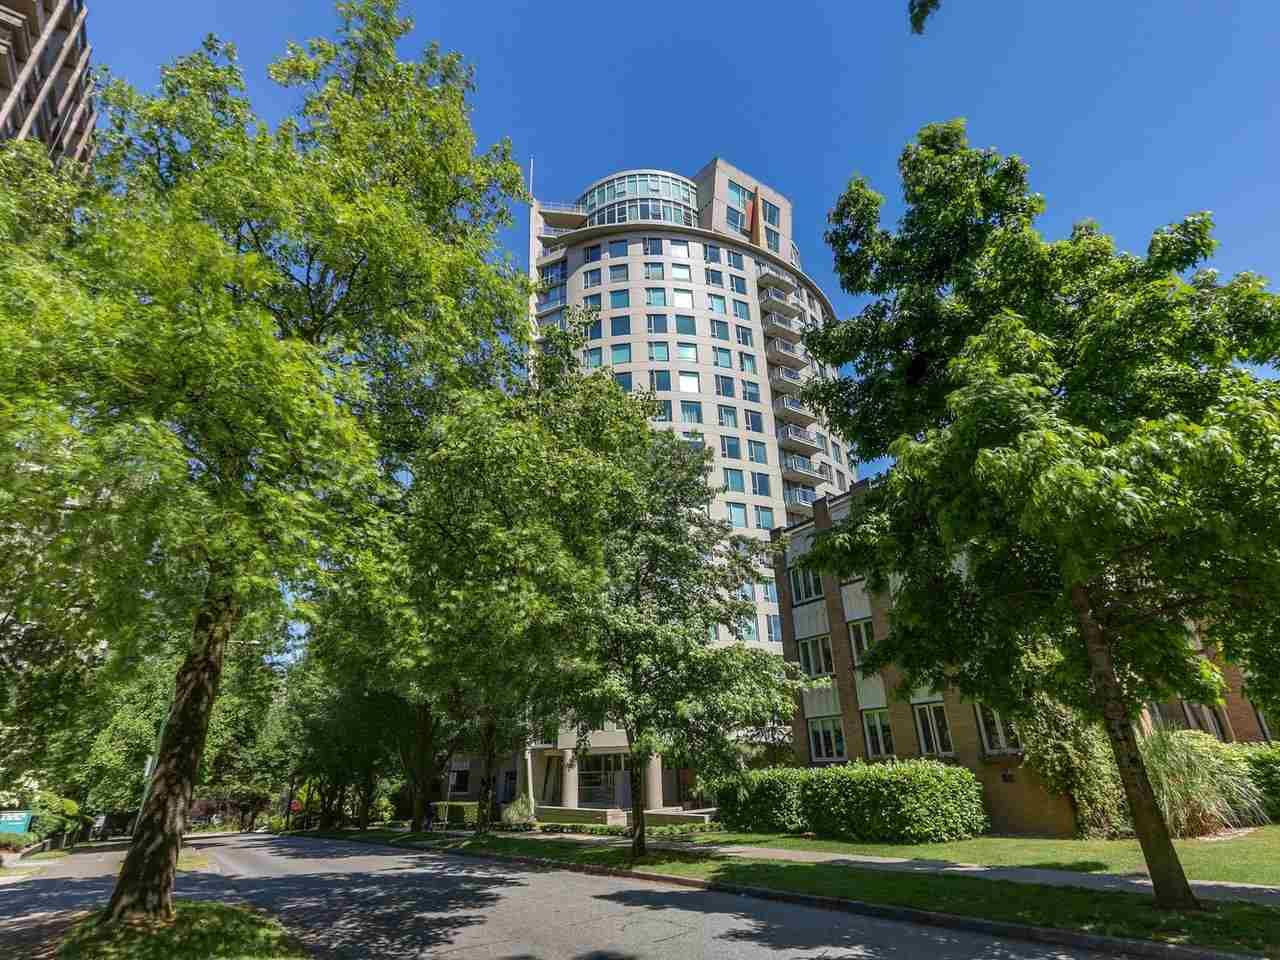 Main Photo: 806 1277 NELSON STREET in : West End VW Condo for sale (Vancouver West)  : MLS®# R2268313